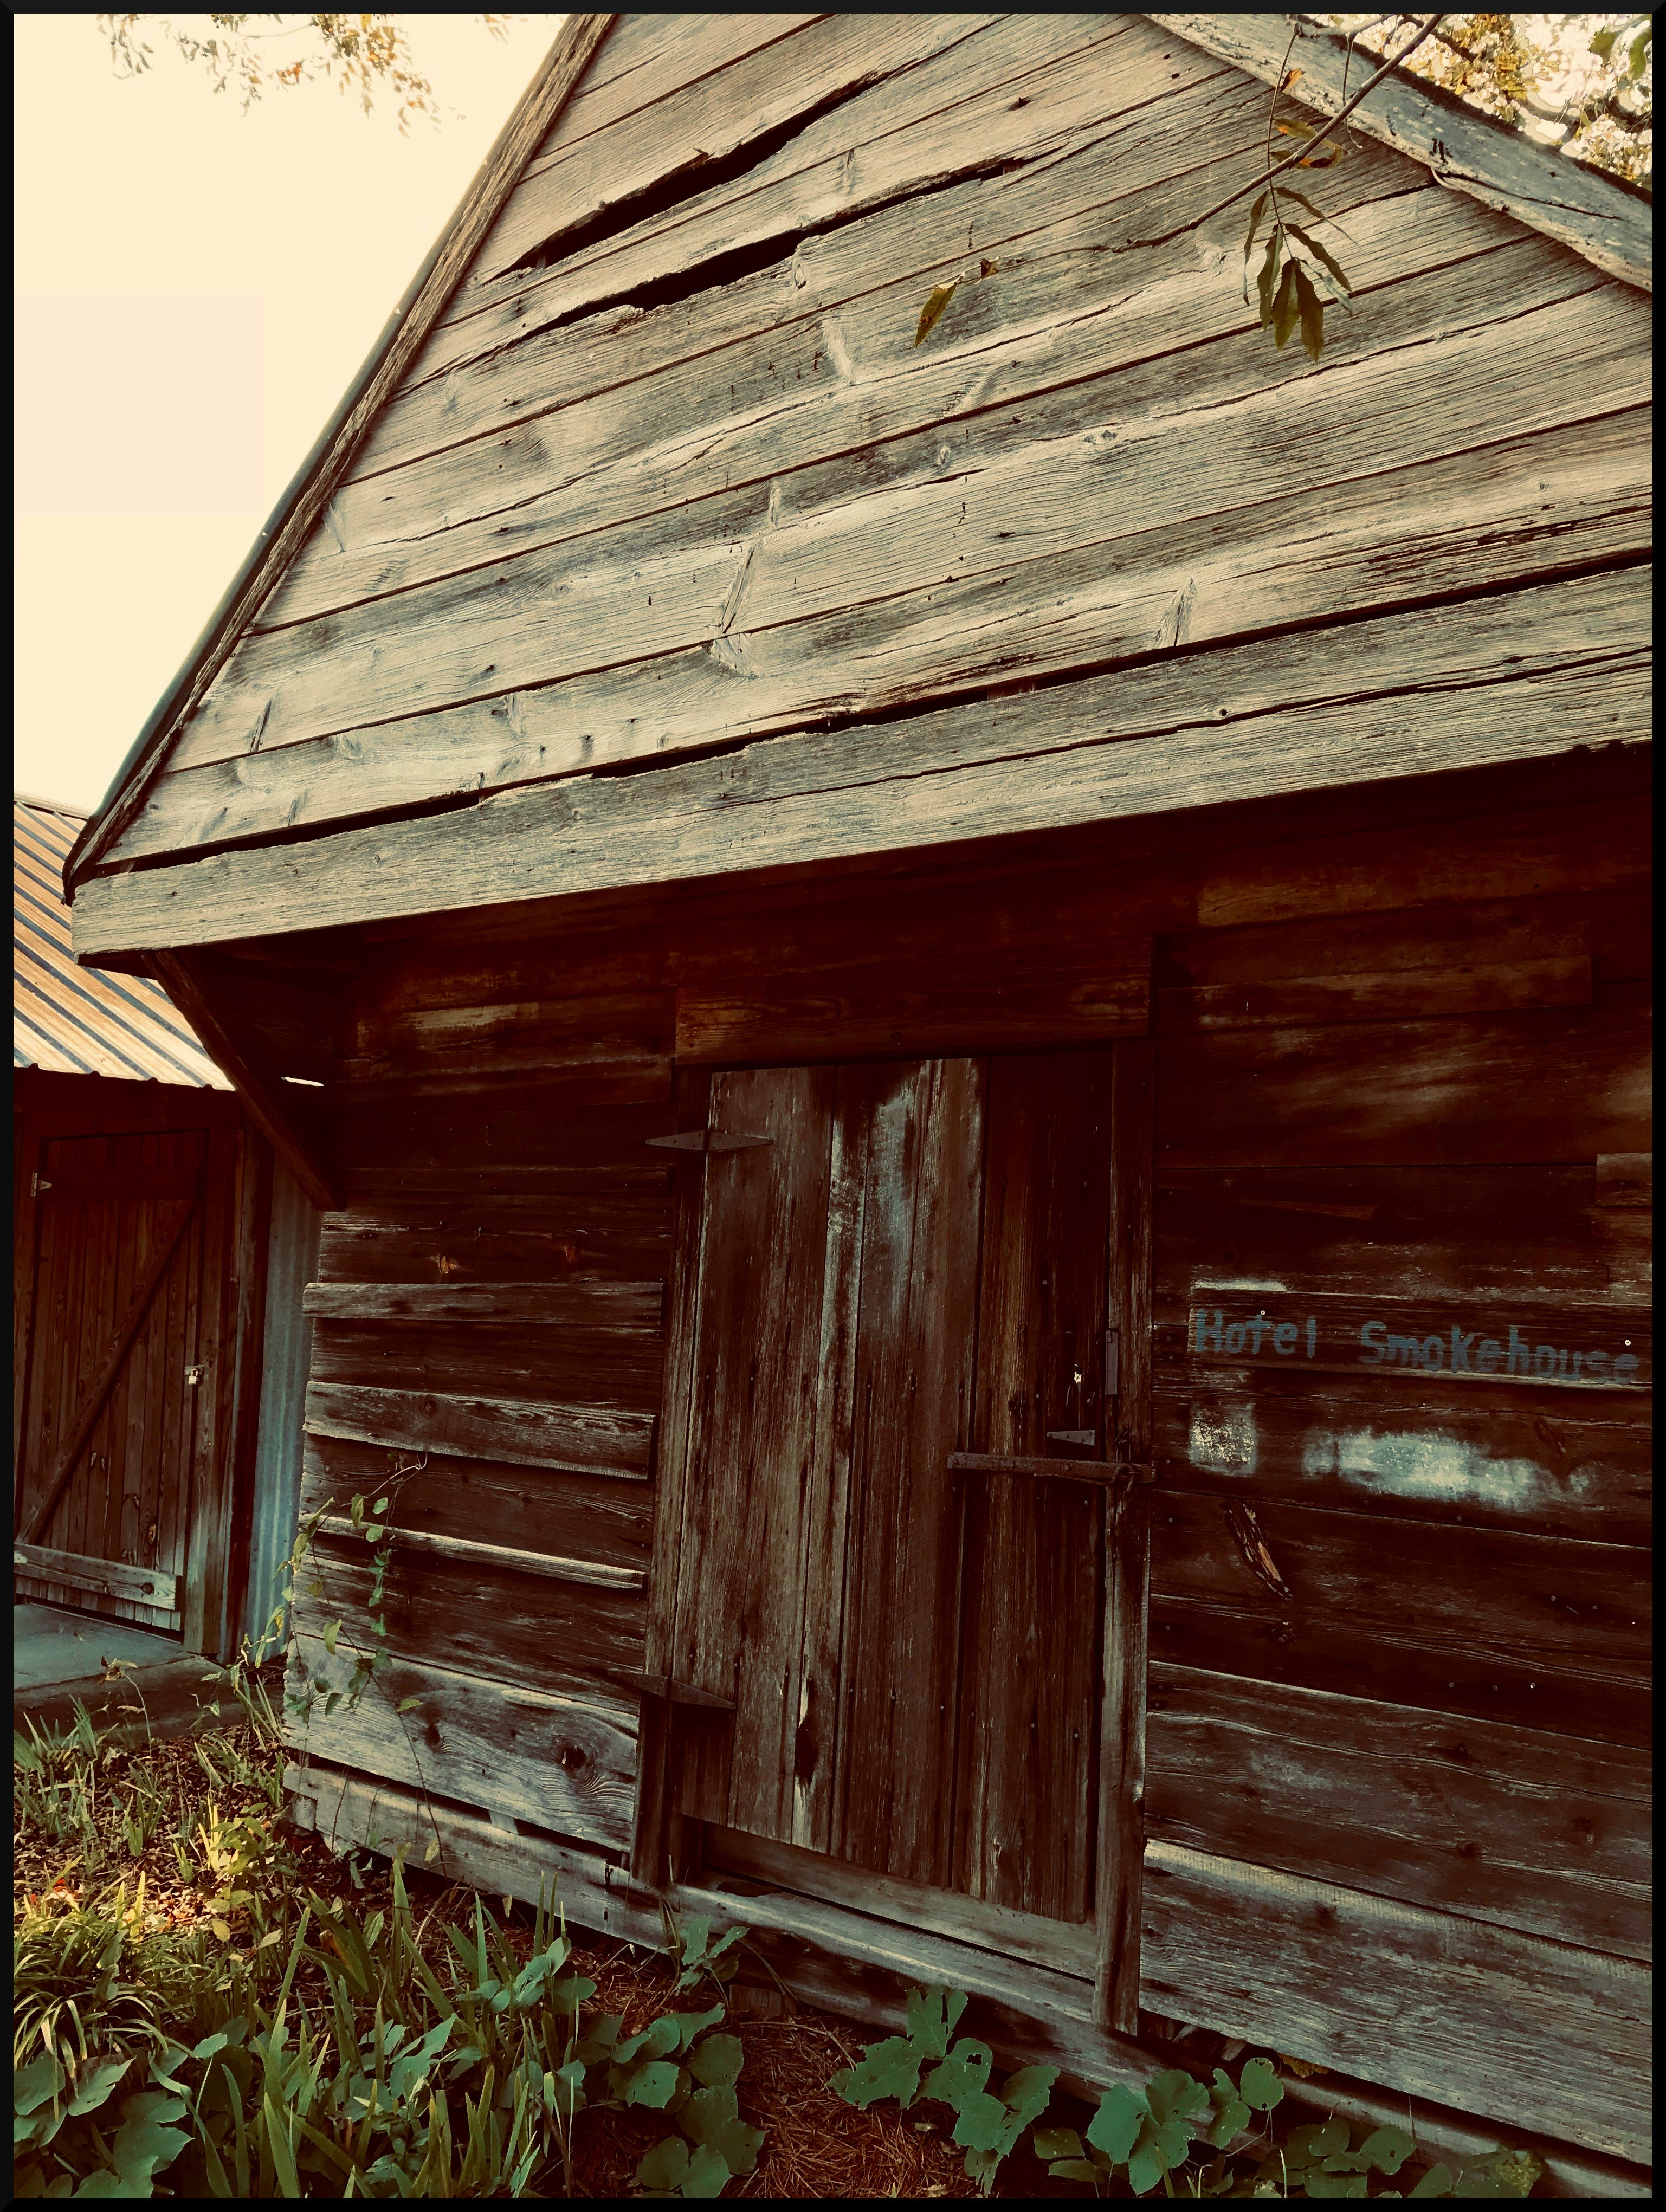 Free stock photo of Historic Building, old building, smokehouse